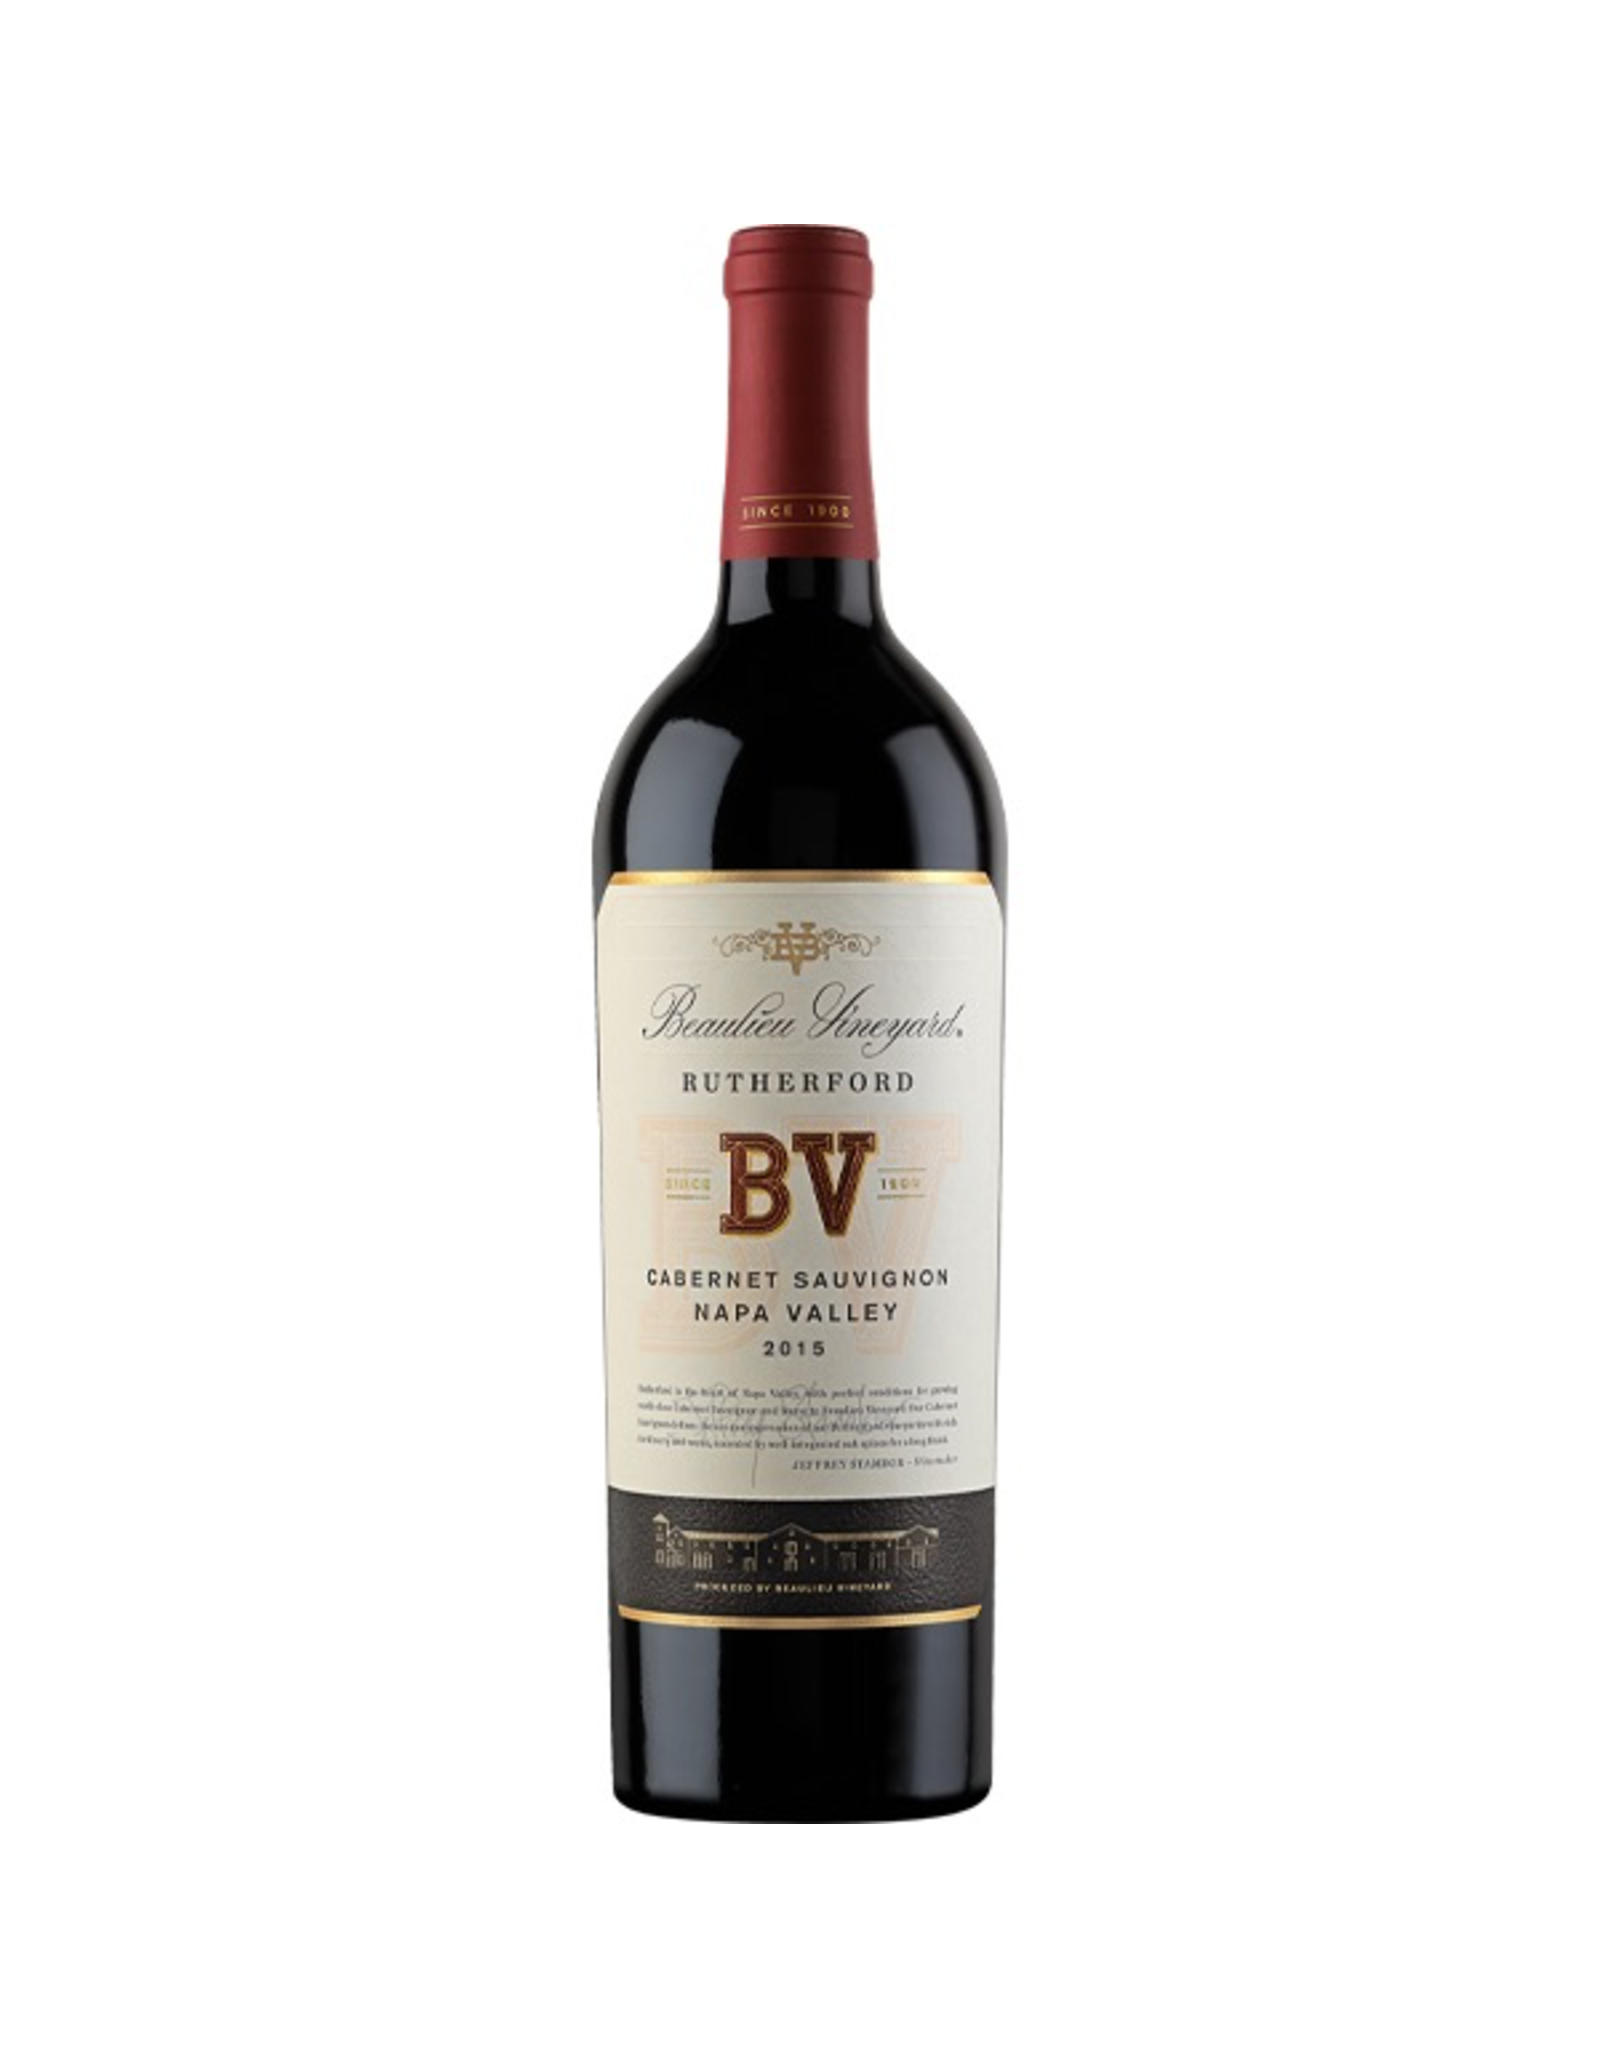 Red Wine 2015, BV Beaulieu Vineyards Rutherford, Cabernet Sauvignon, Rutherford, Napa Valley, California, 14.6% Alc, CTnr, TW92